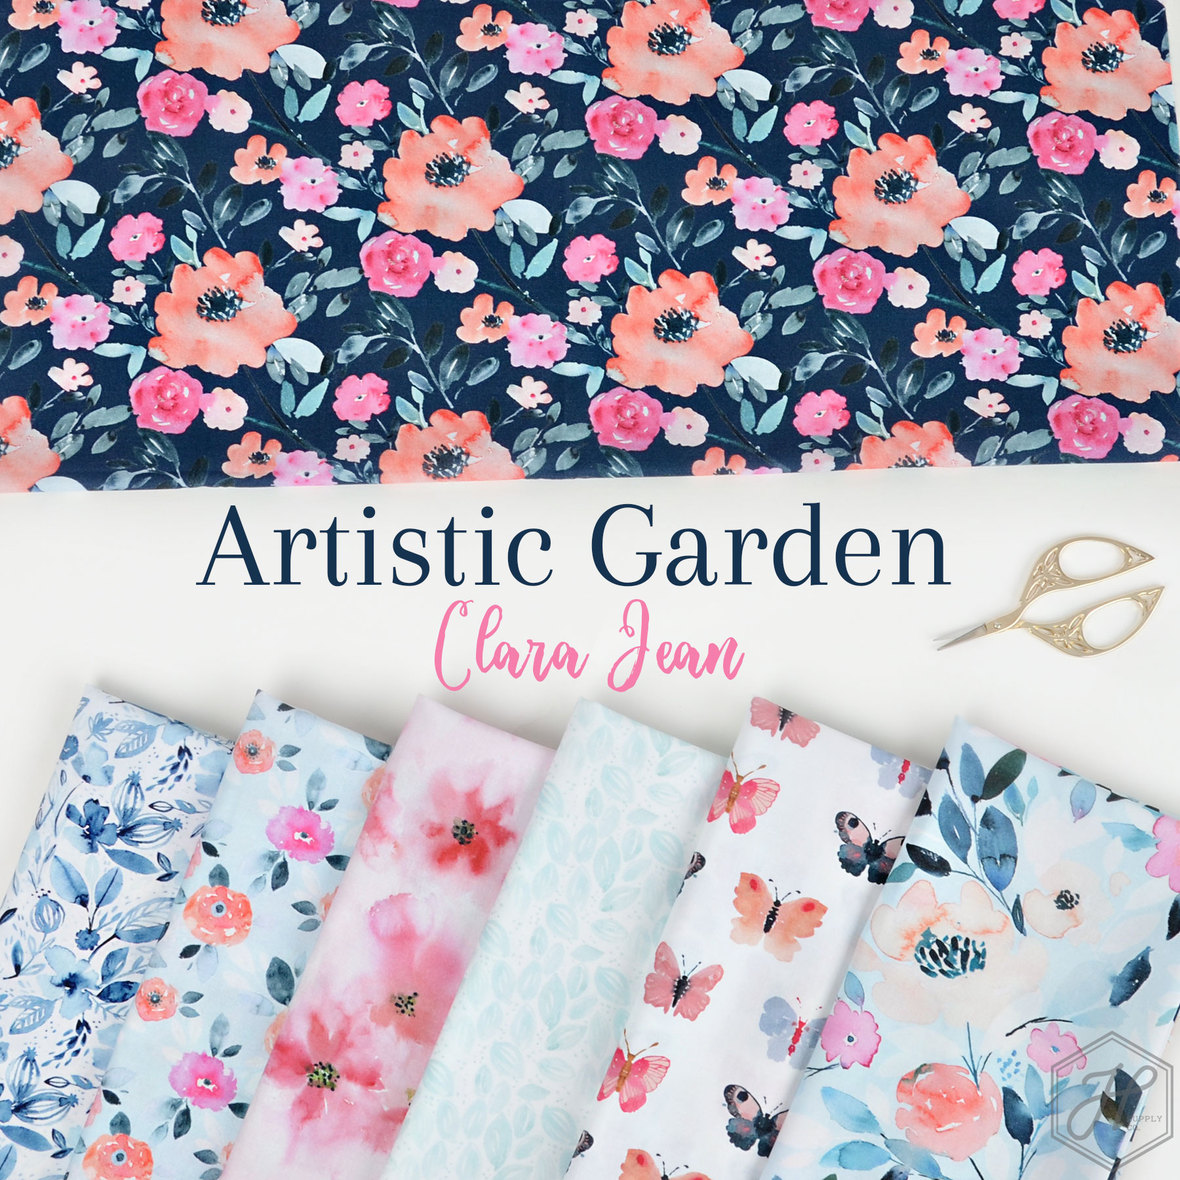 Artistic-Garden-Fabric-Poster-Clara-Jean-at-Hawthorne-Supply-Co